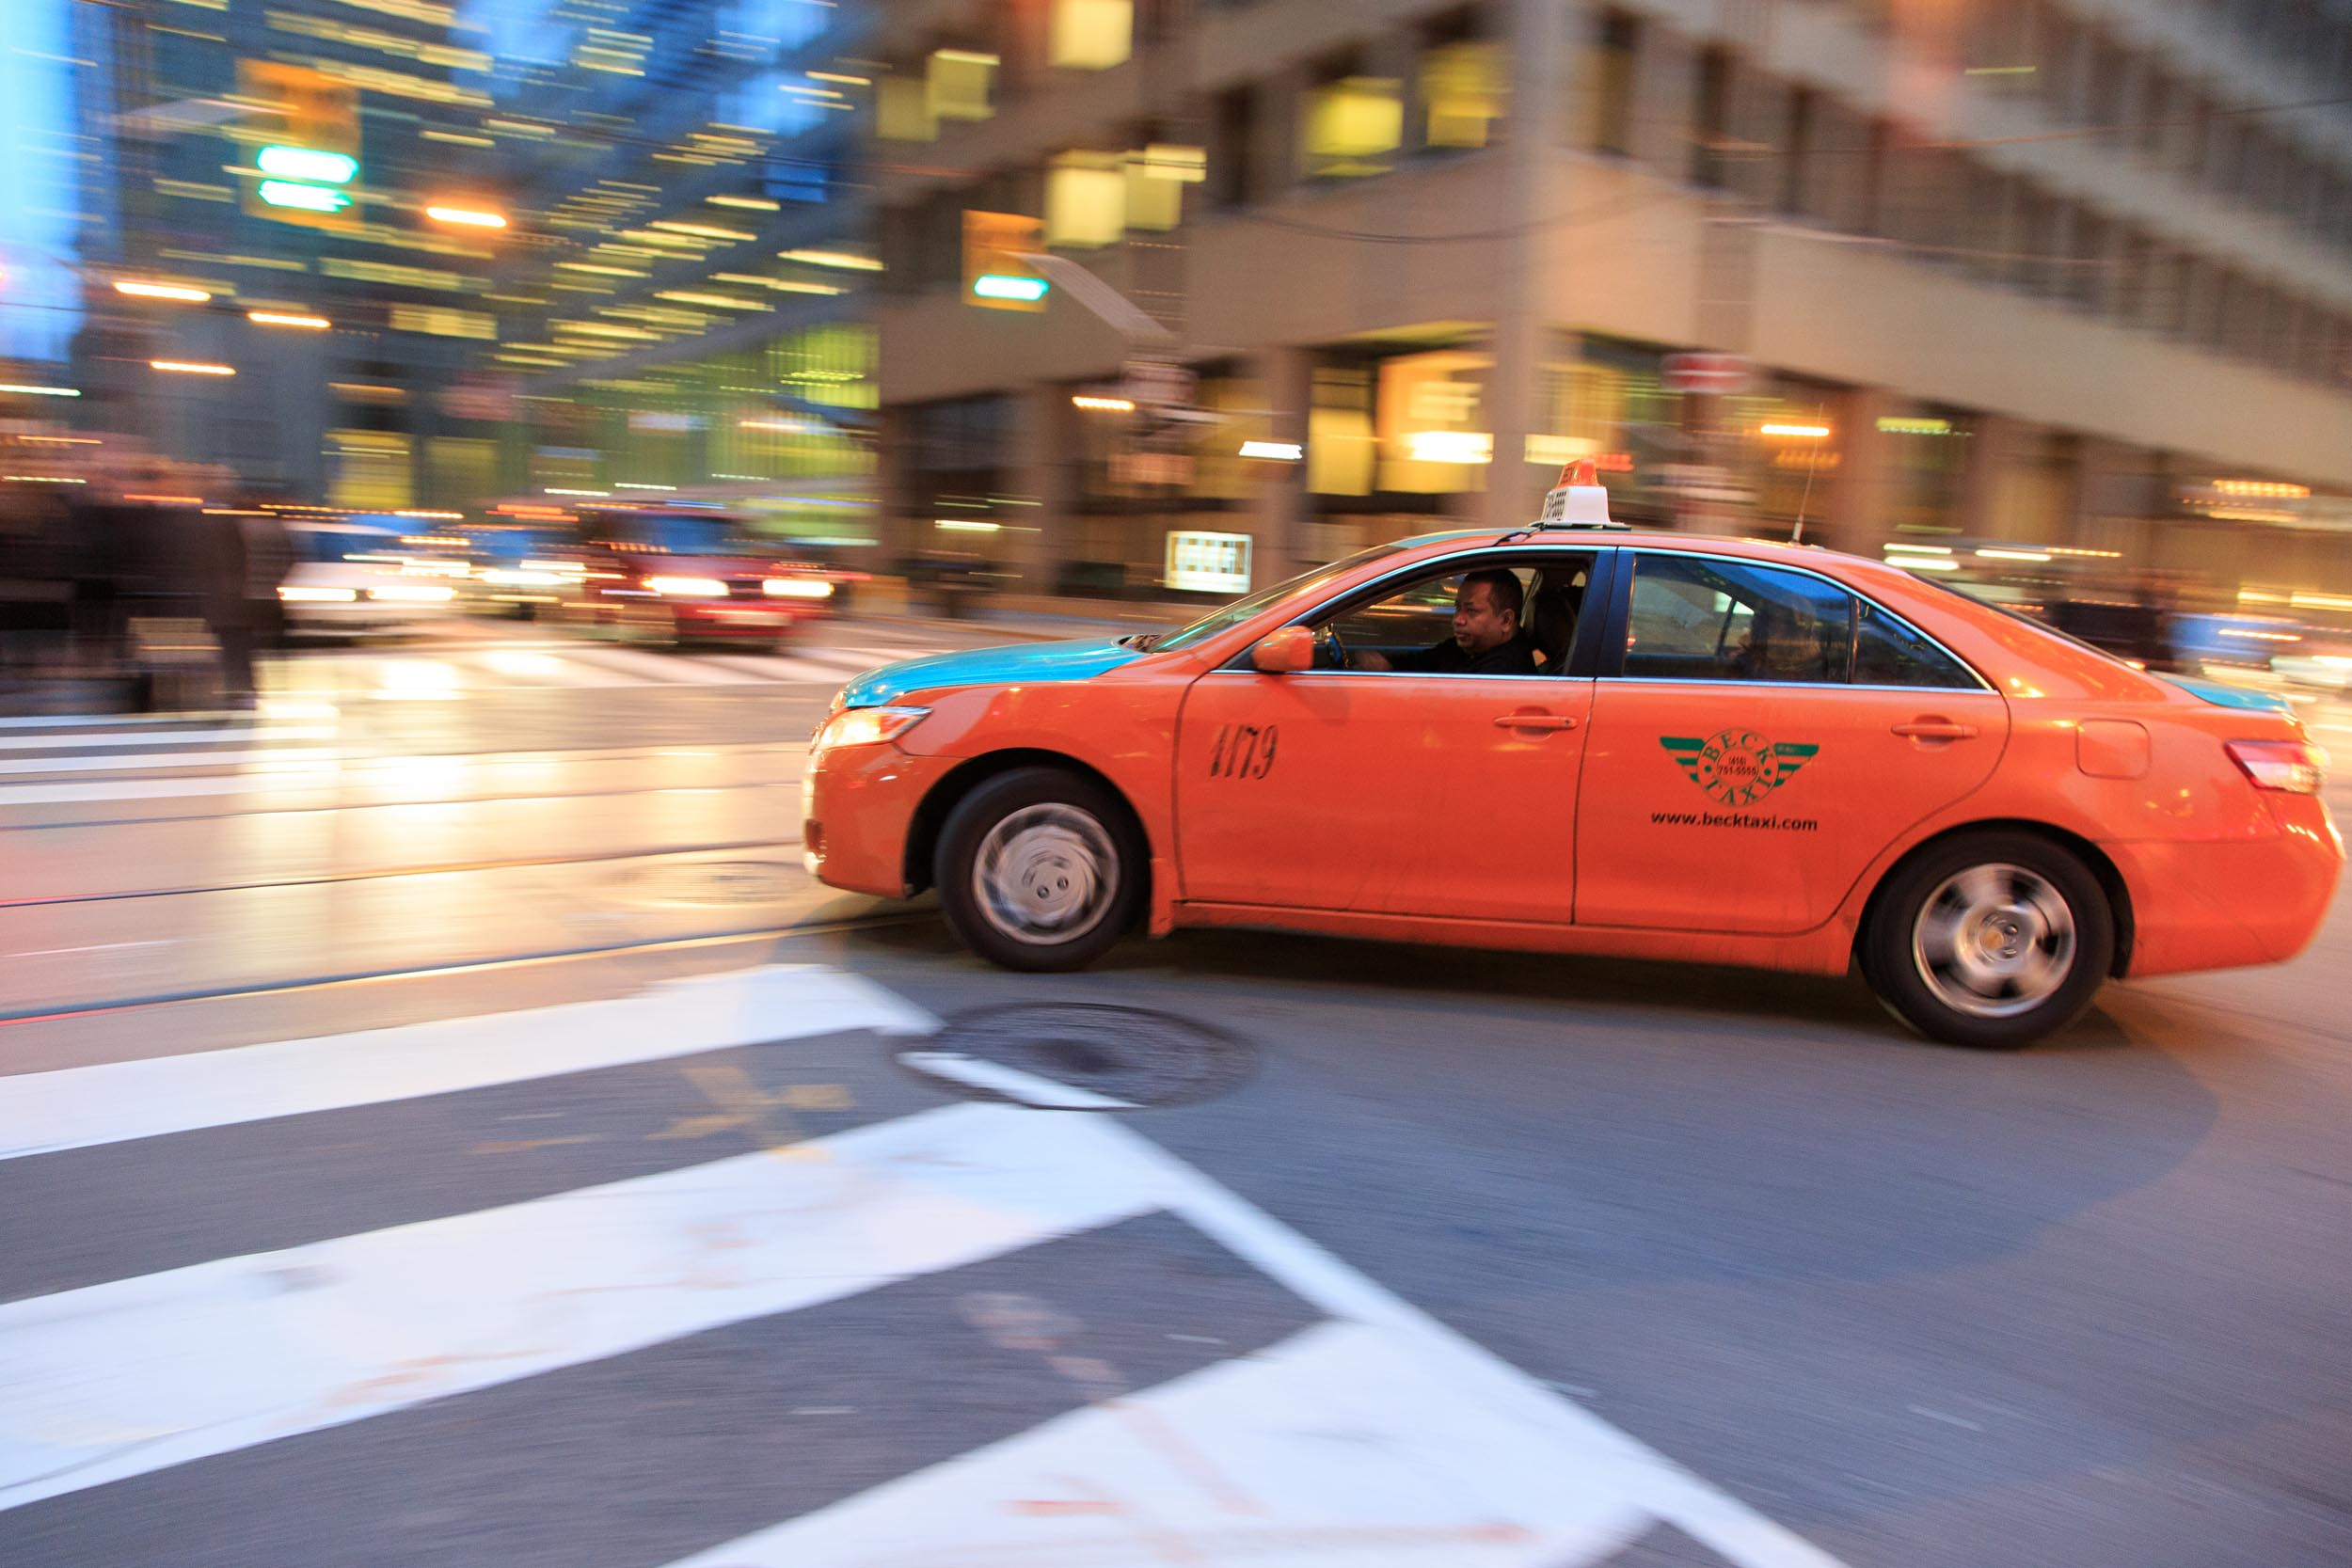 New York Times Photography of Toronto Cab for 36 Hours Travel Guide